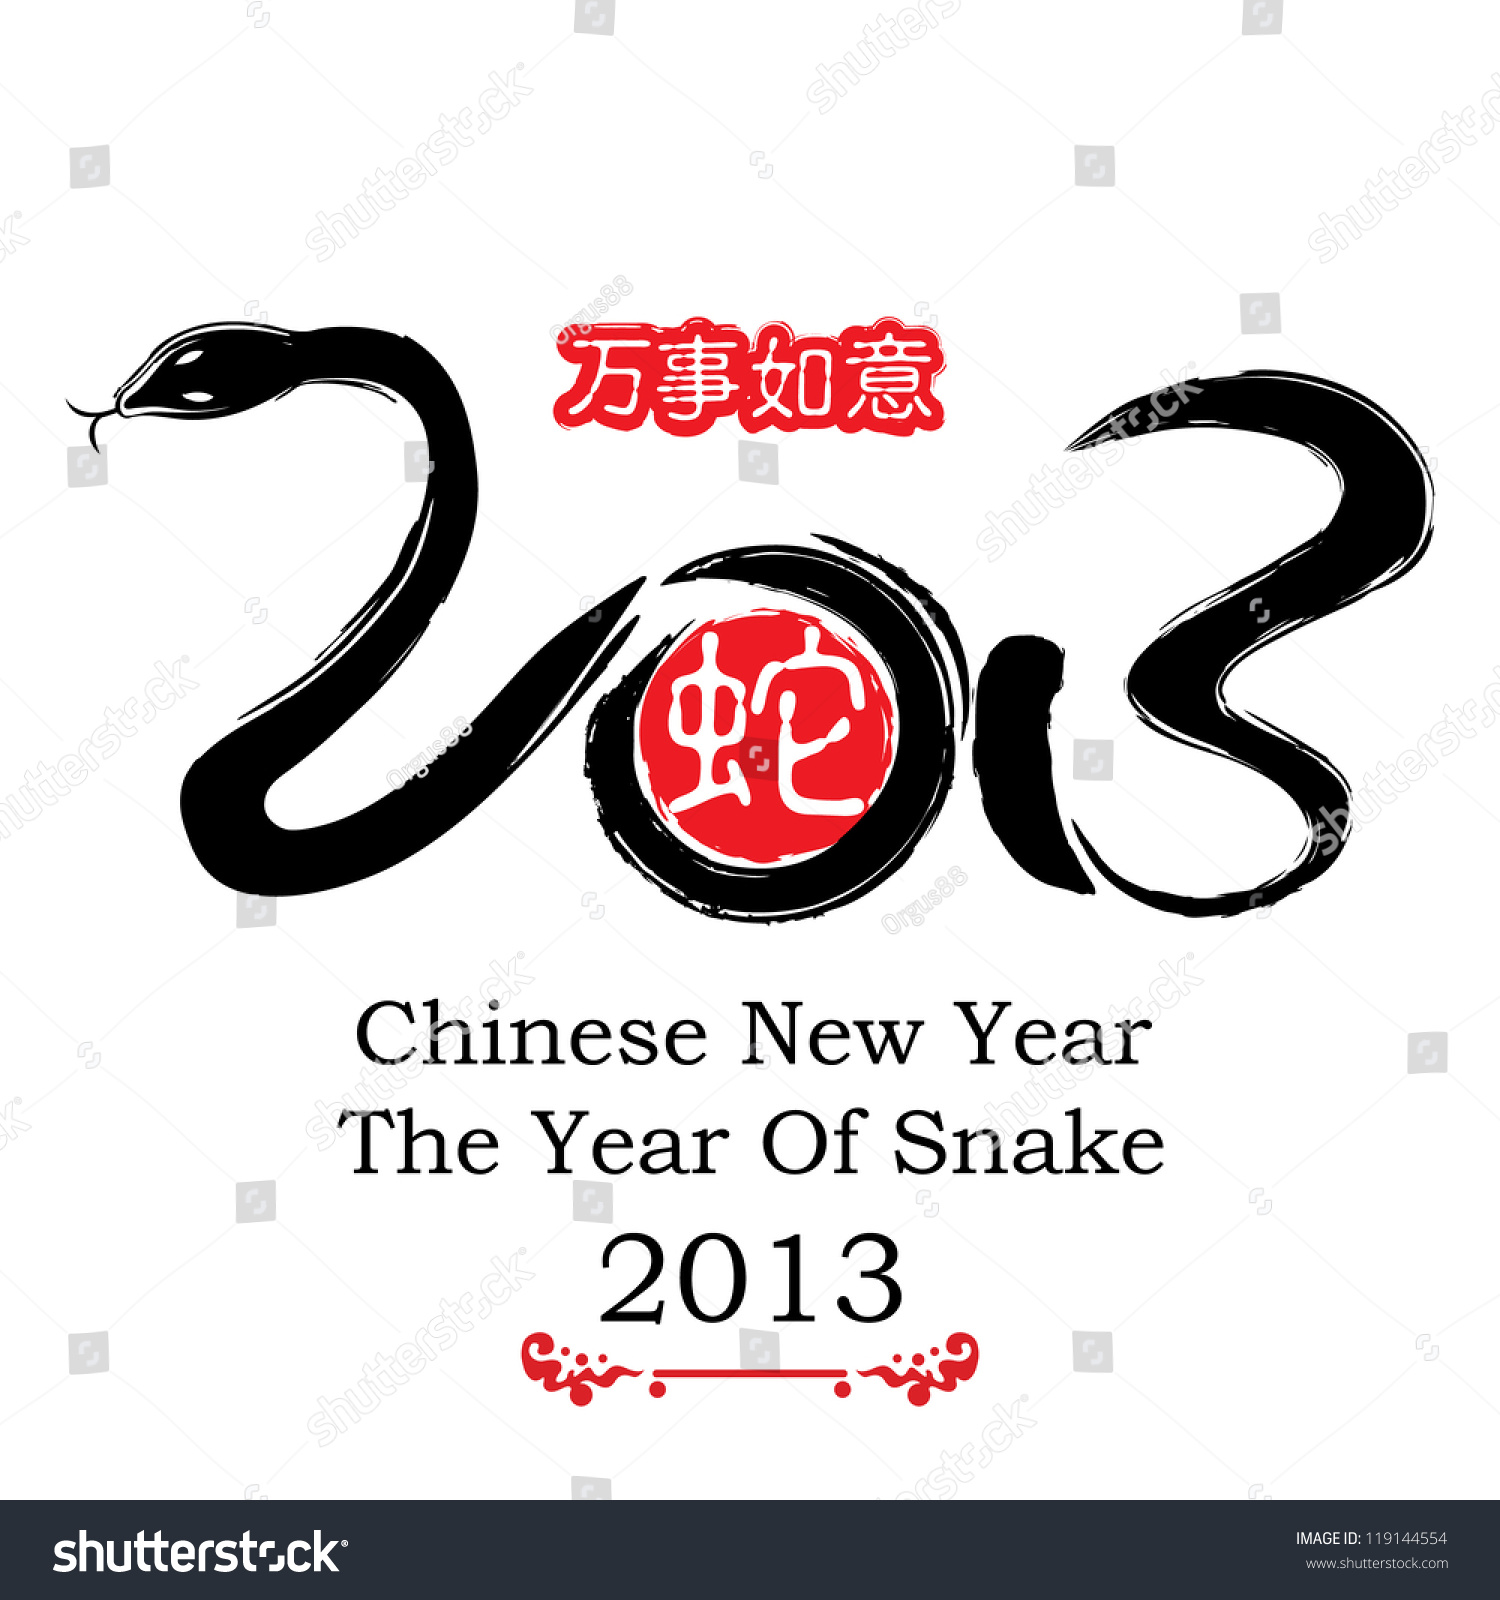 chinese calligraphy 2013 year snake design stock vector 119144554 shutterstock. Black Bedroom Furniture Sets. Home Design Ideas